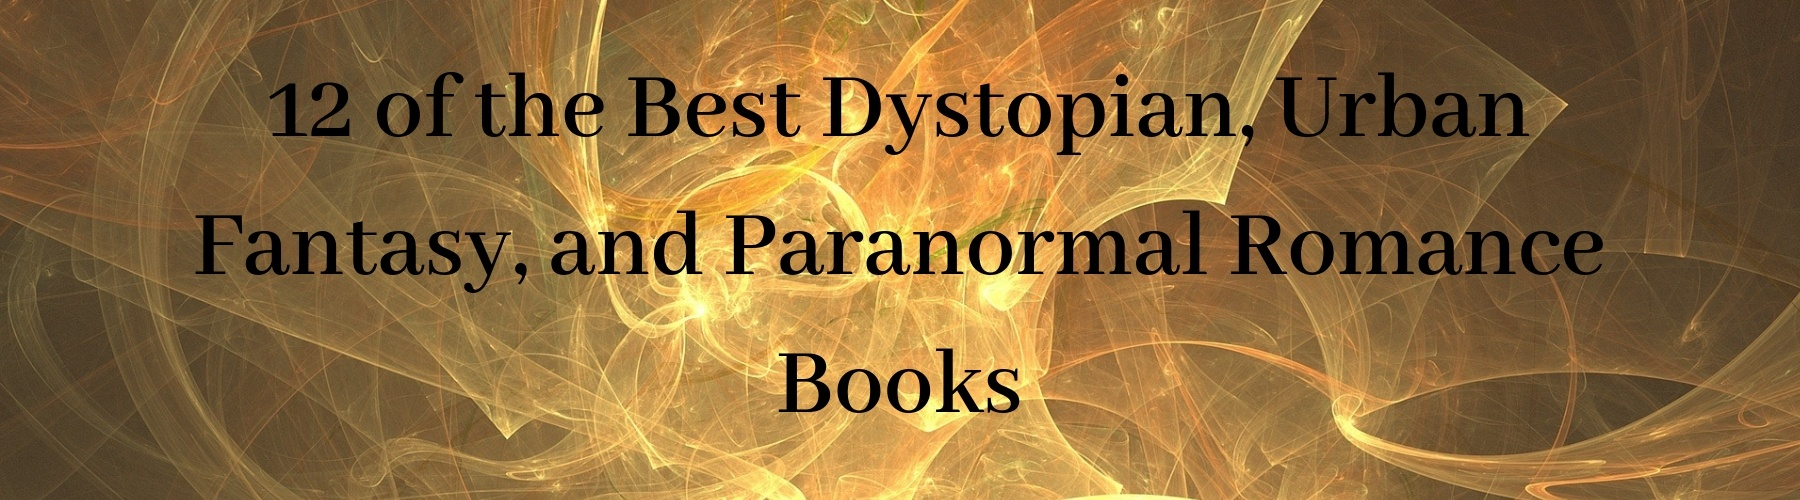 12 of the Best Dystopian, Urban Fantasy, and Paranormal Romance